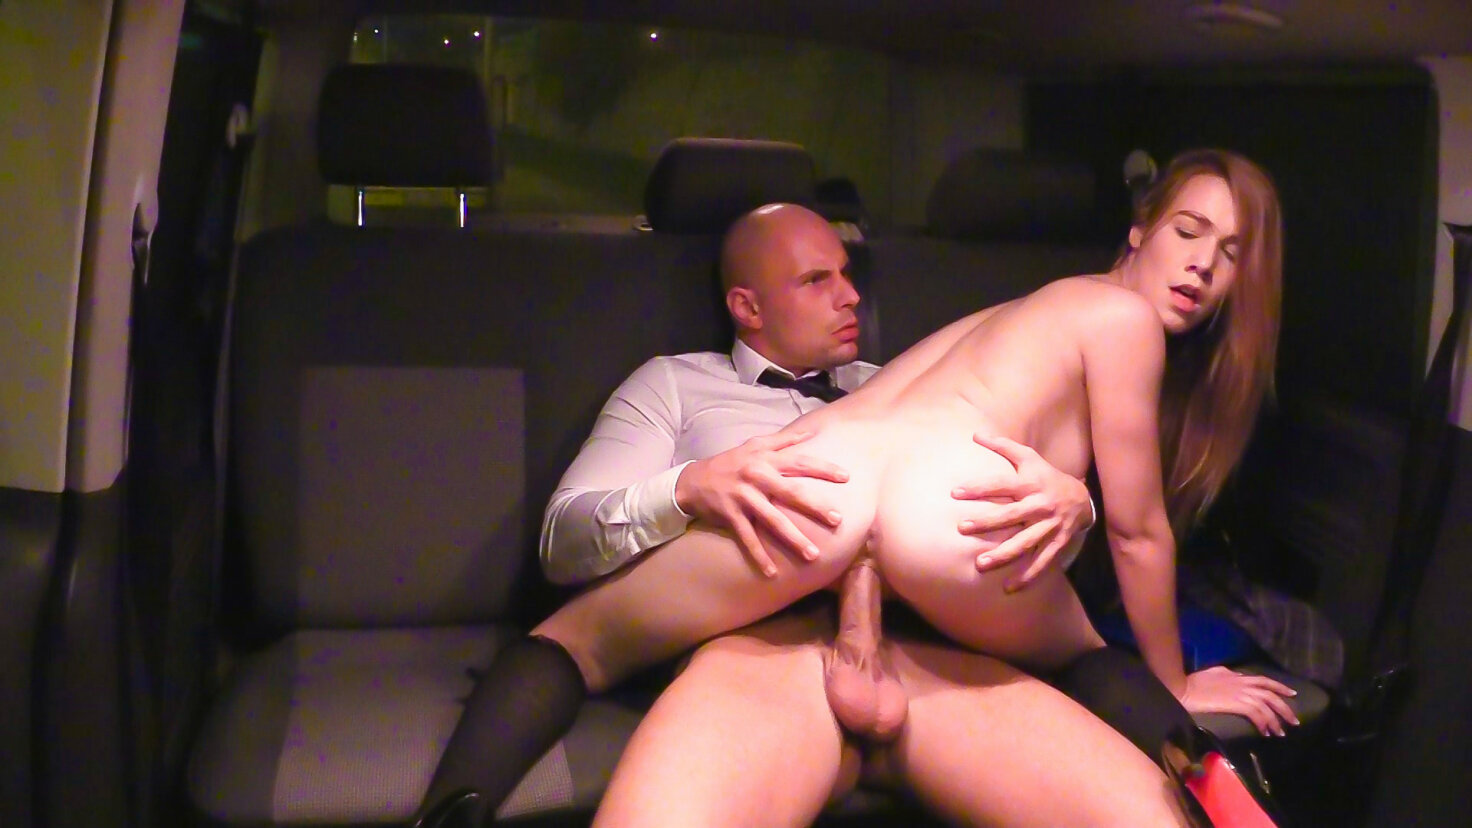 Naughty Czech schoolgirl Alexis Crystal fucked in the backseat of the car